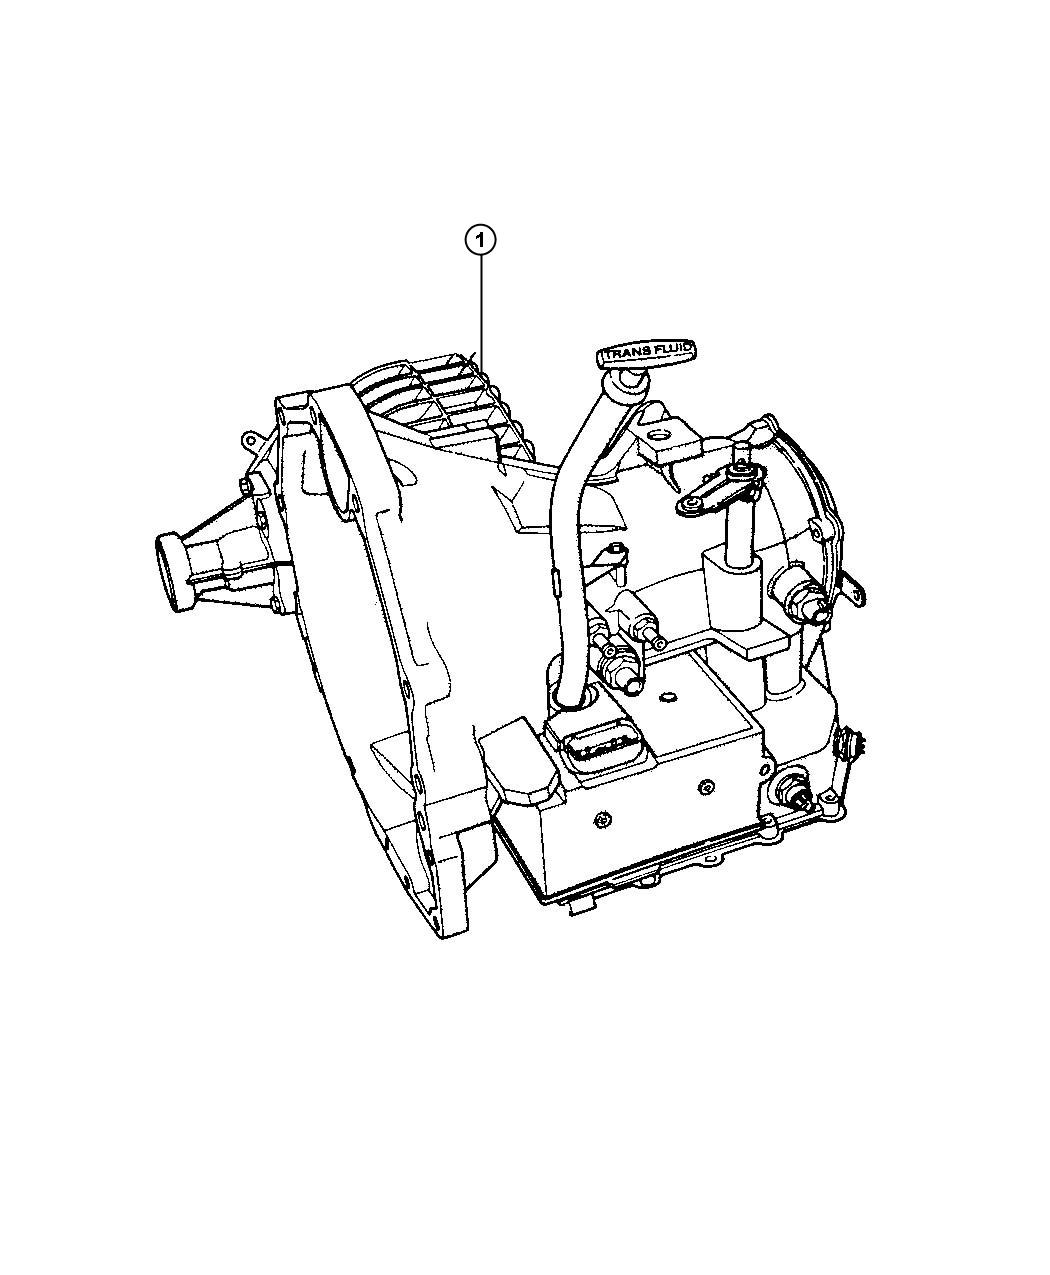 Chrysler Sebring Transaxle Package With Torque